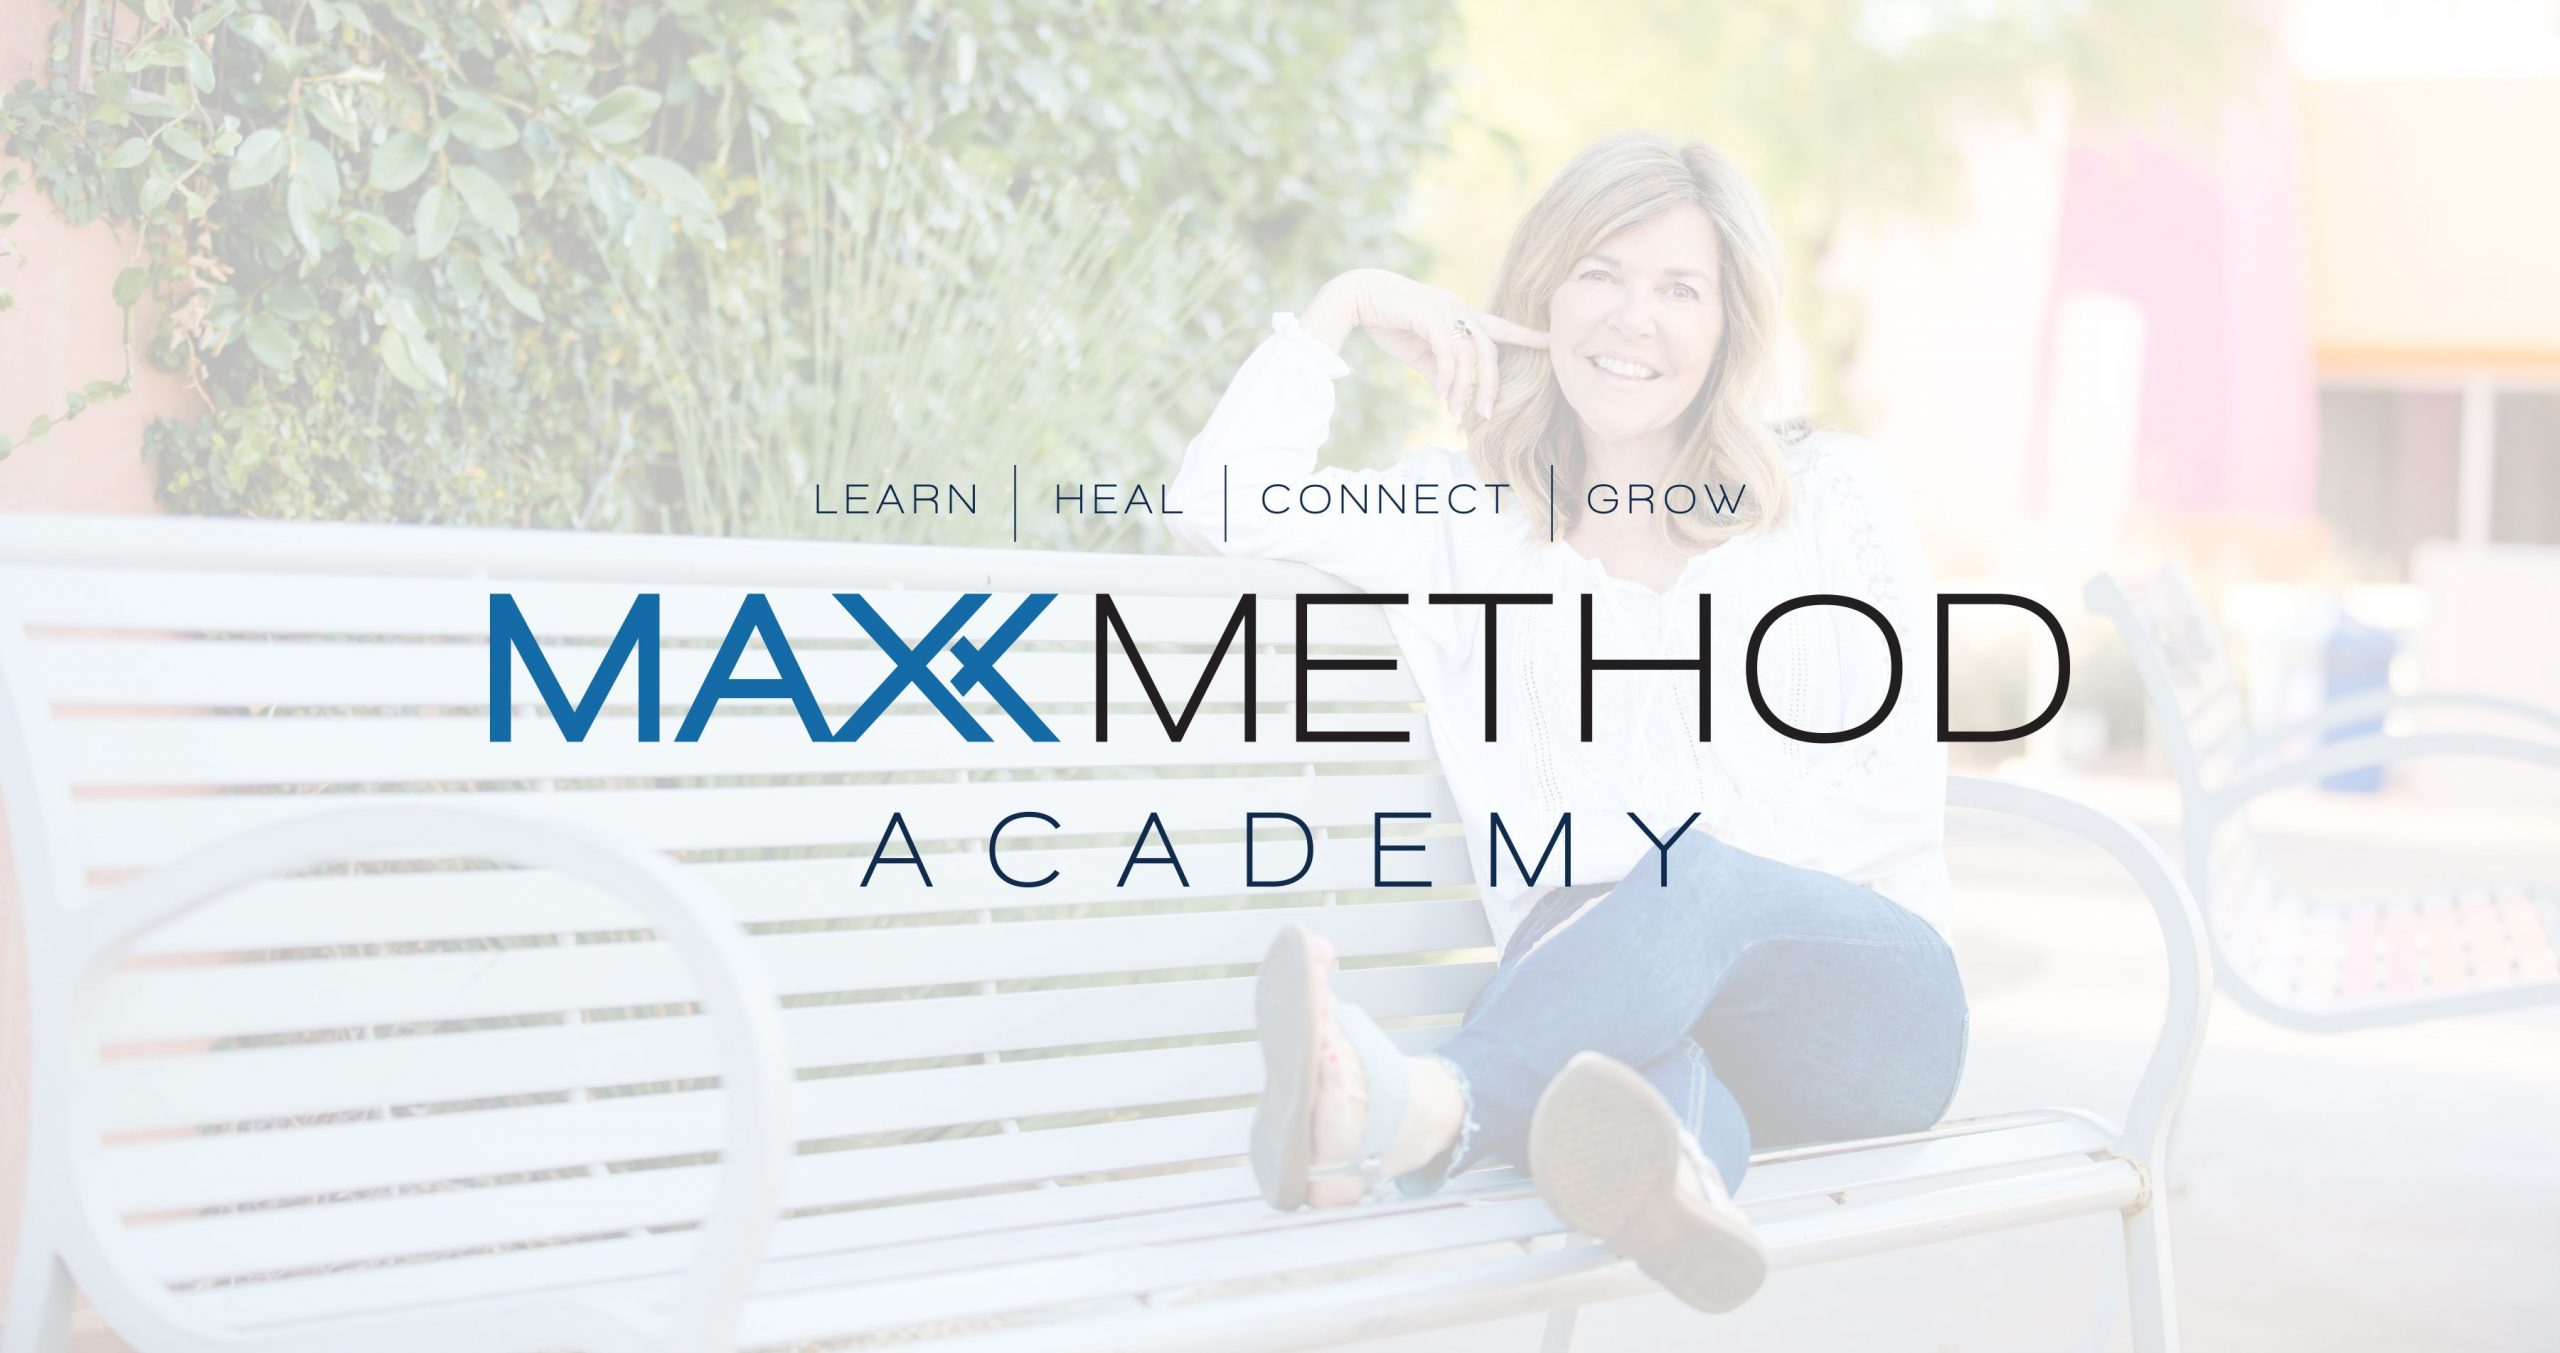 Maxxmethod Academy Overview